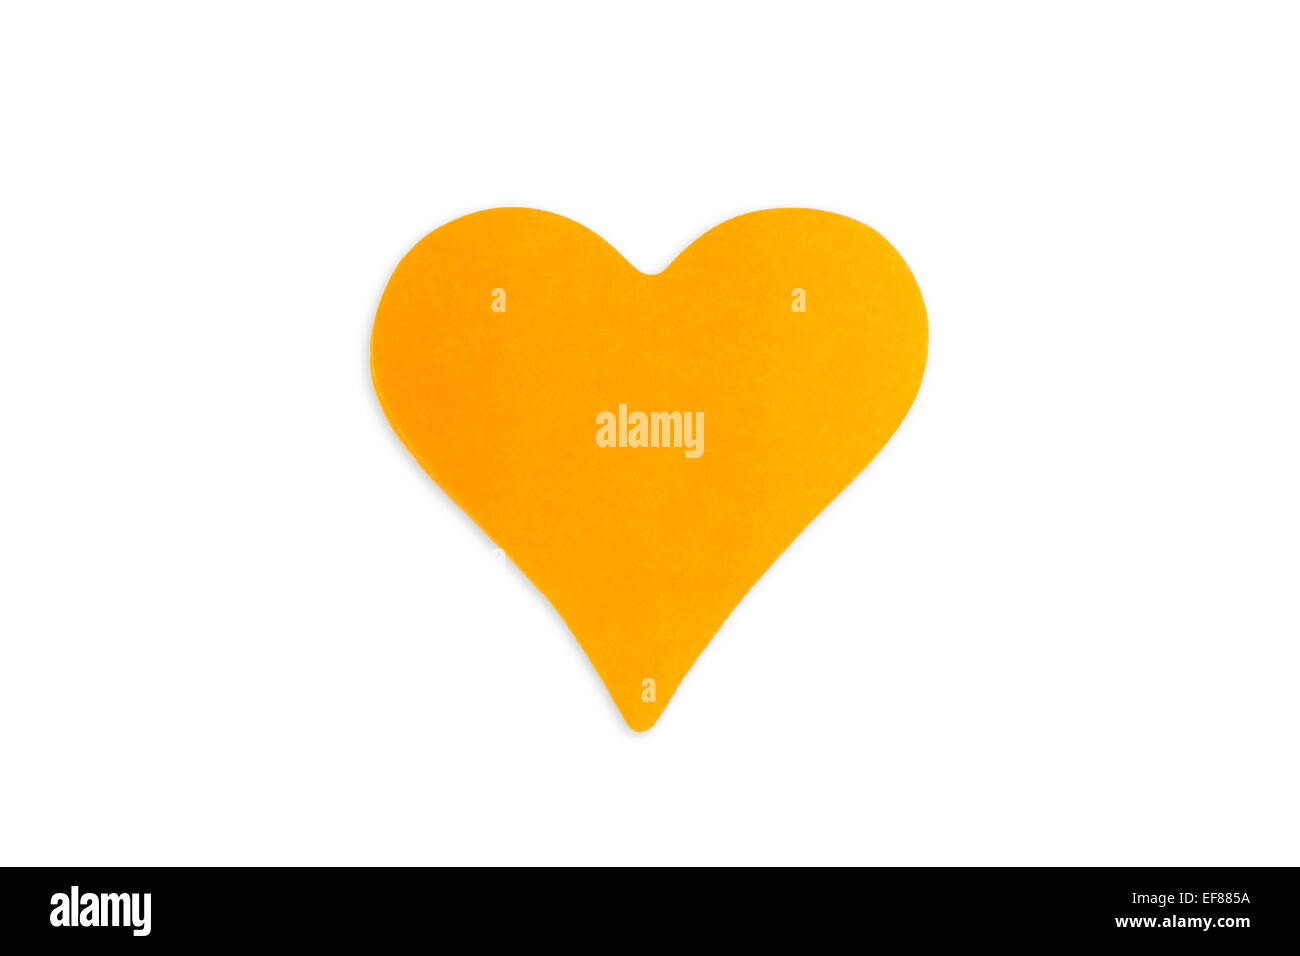 Blank orange Post-it note (sticky note) in heart shape, isolated on white background. - Stock Image